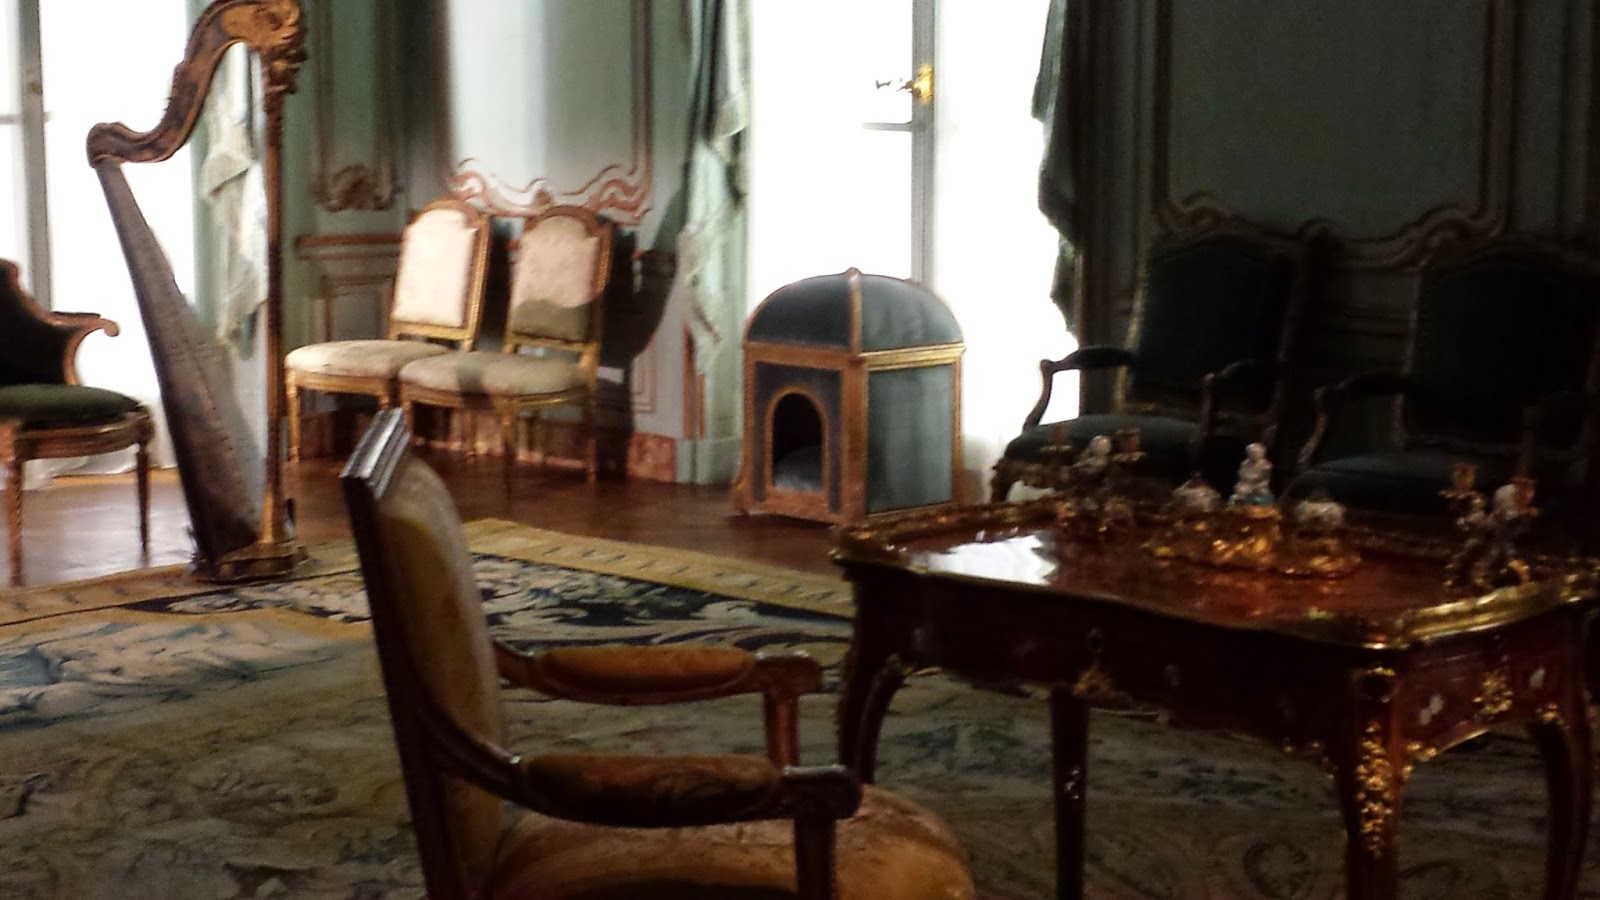 A close up of marie antoinette's dog house